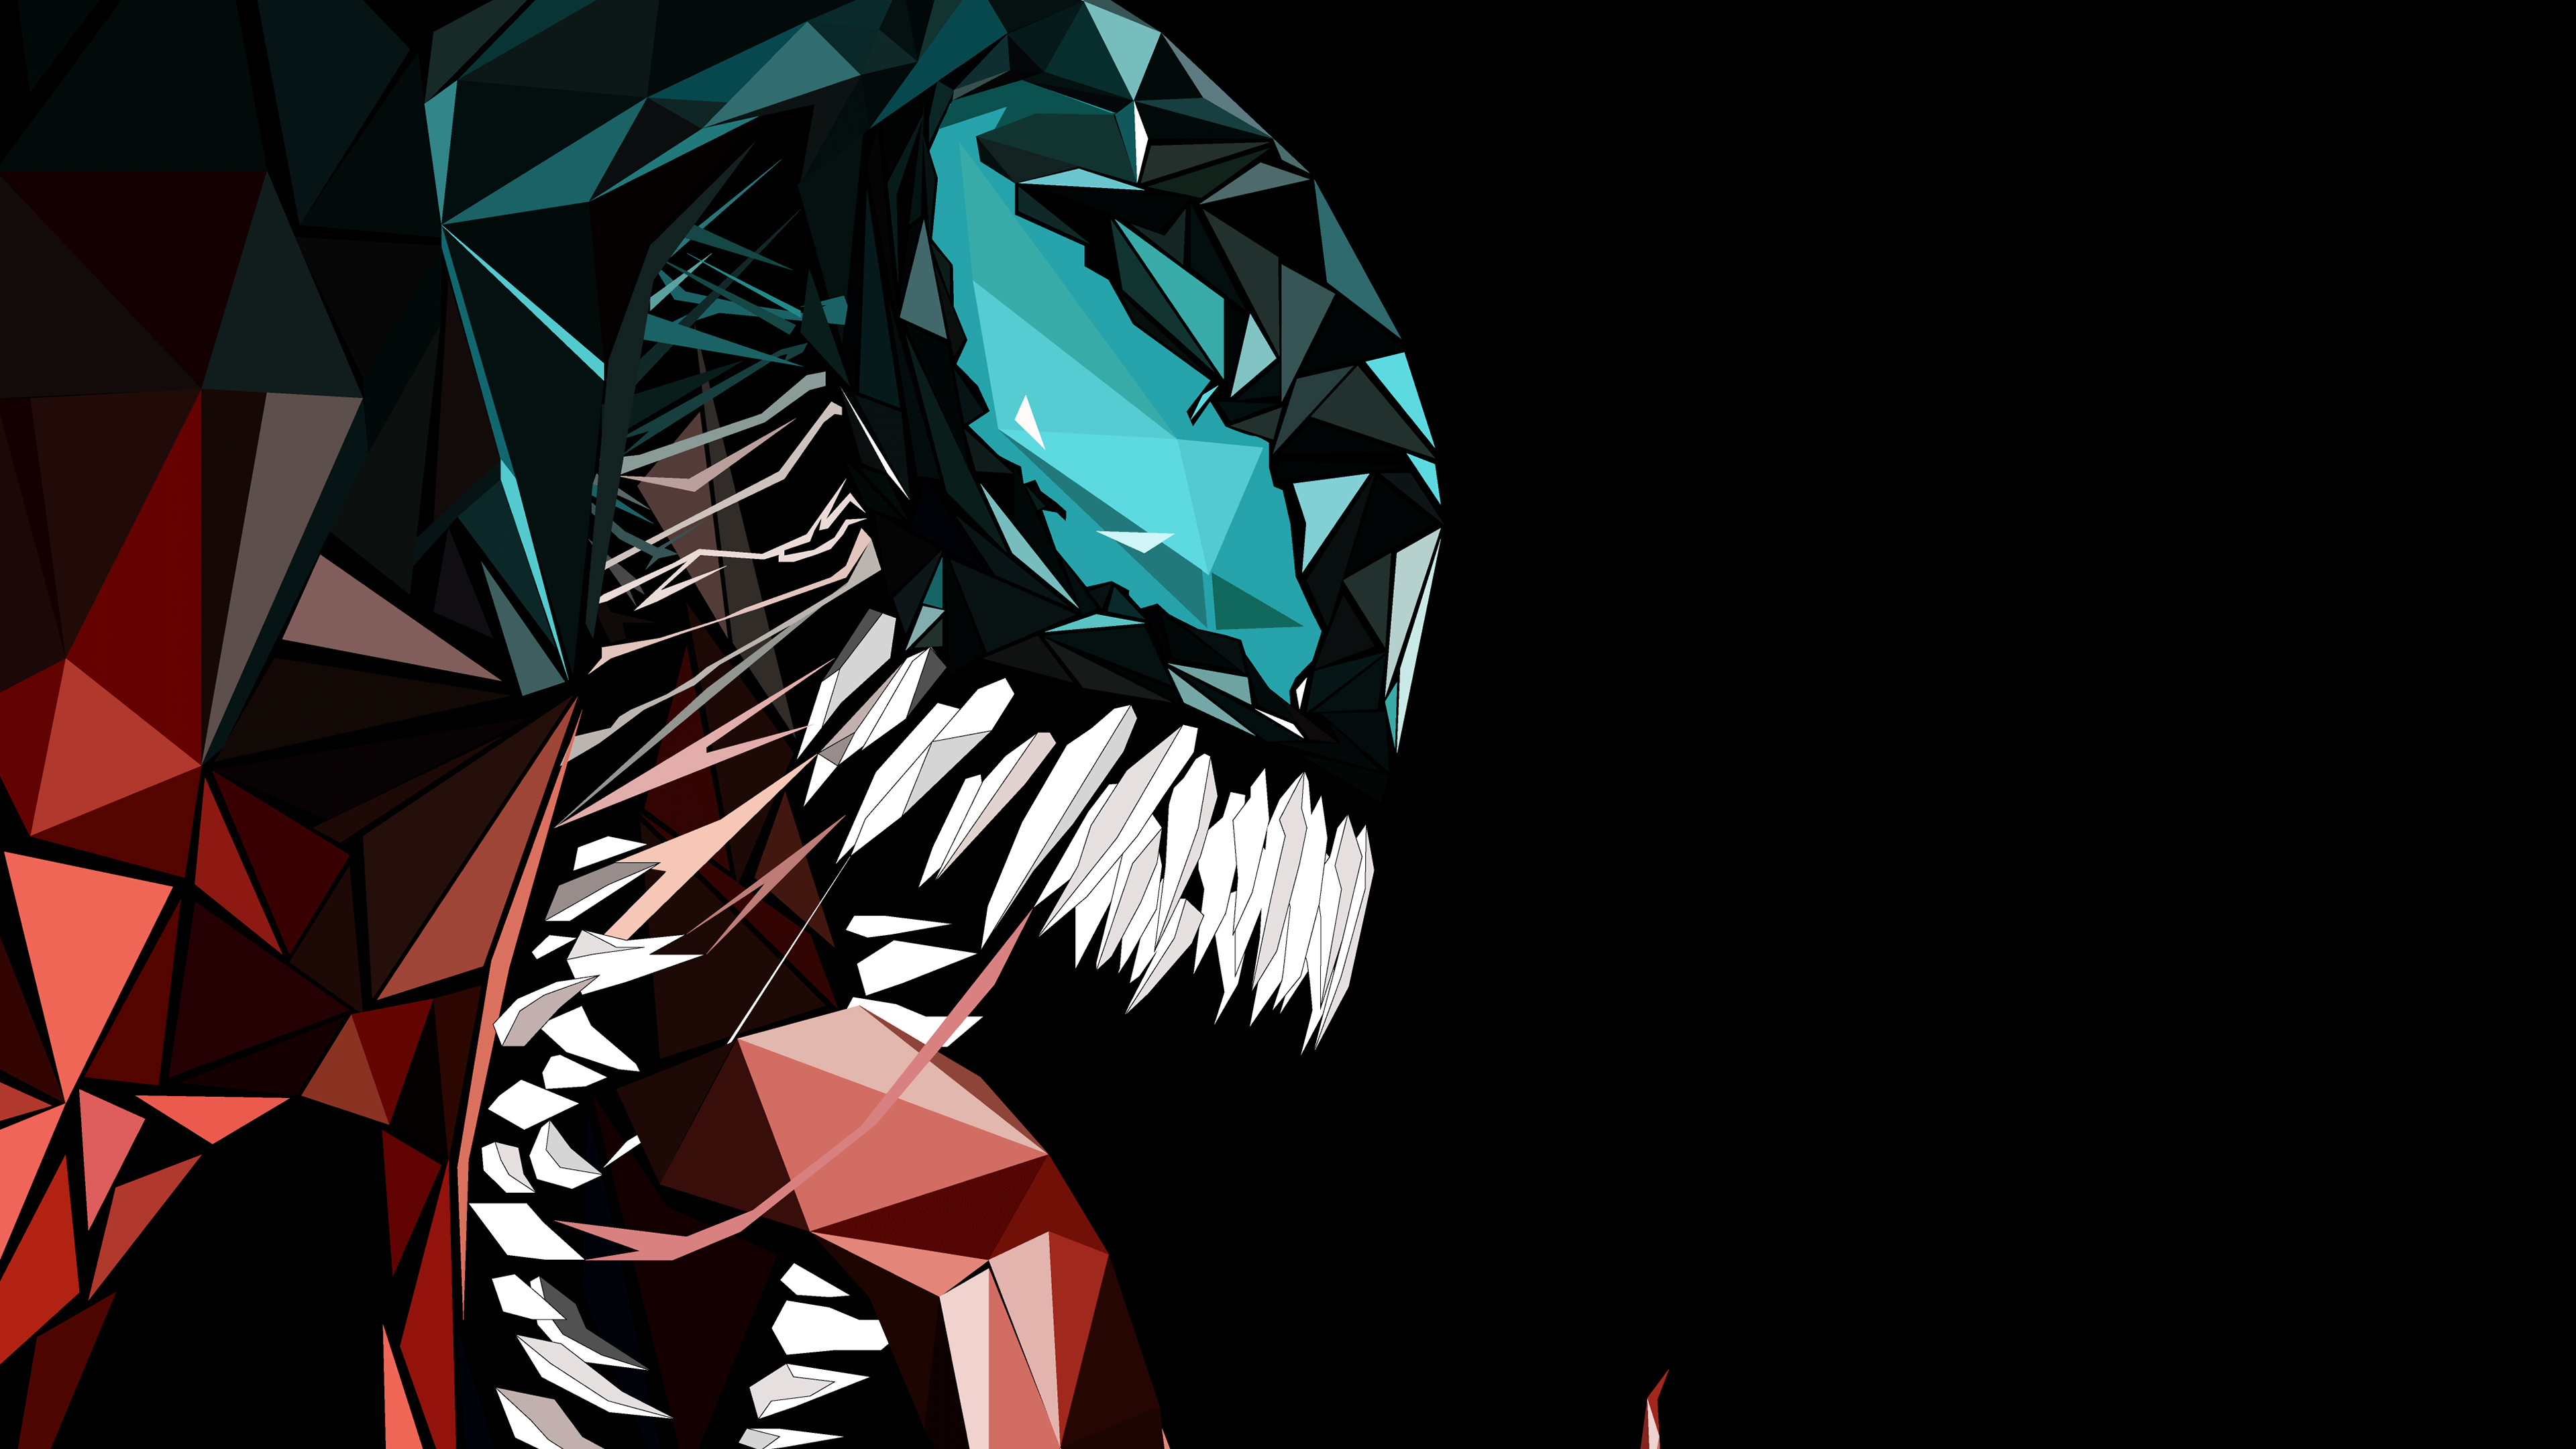 Venom Abstract 4k Abstract Desktop Wallpaper 4k 3116200 Hd Wallpaper Backgrounds Download